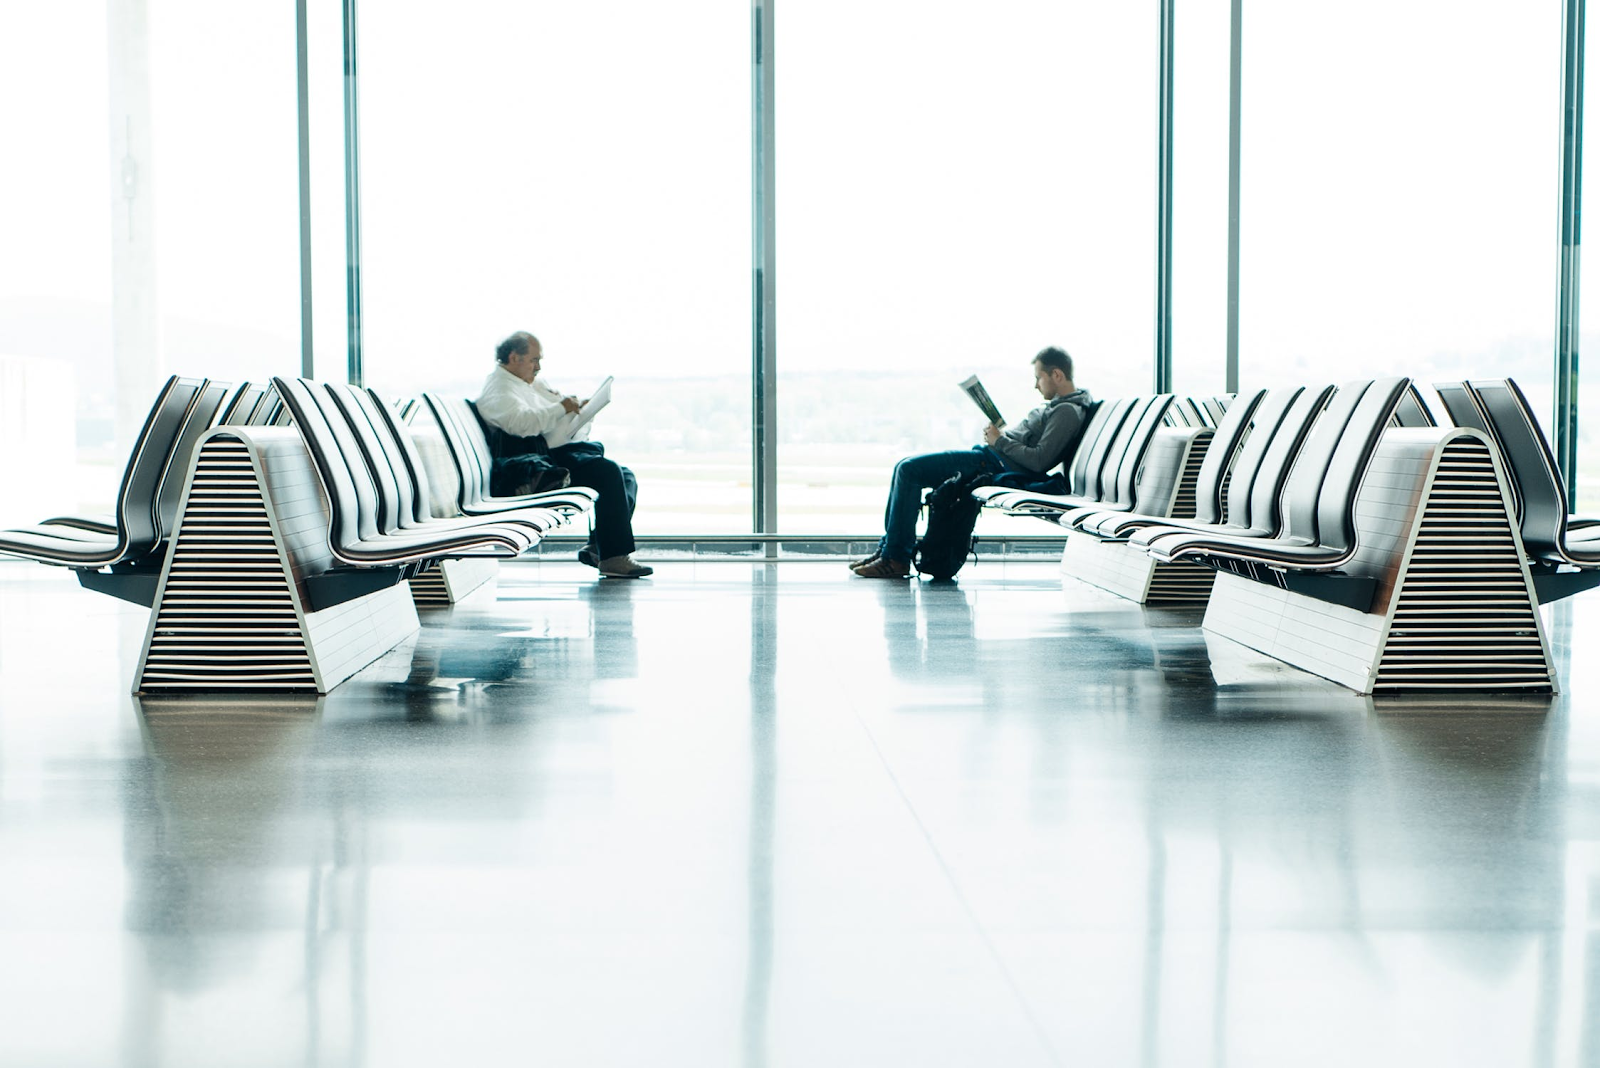 men sitting at an airport gate